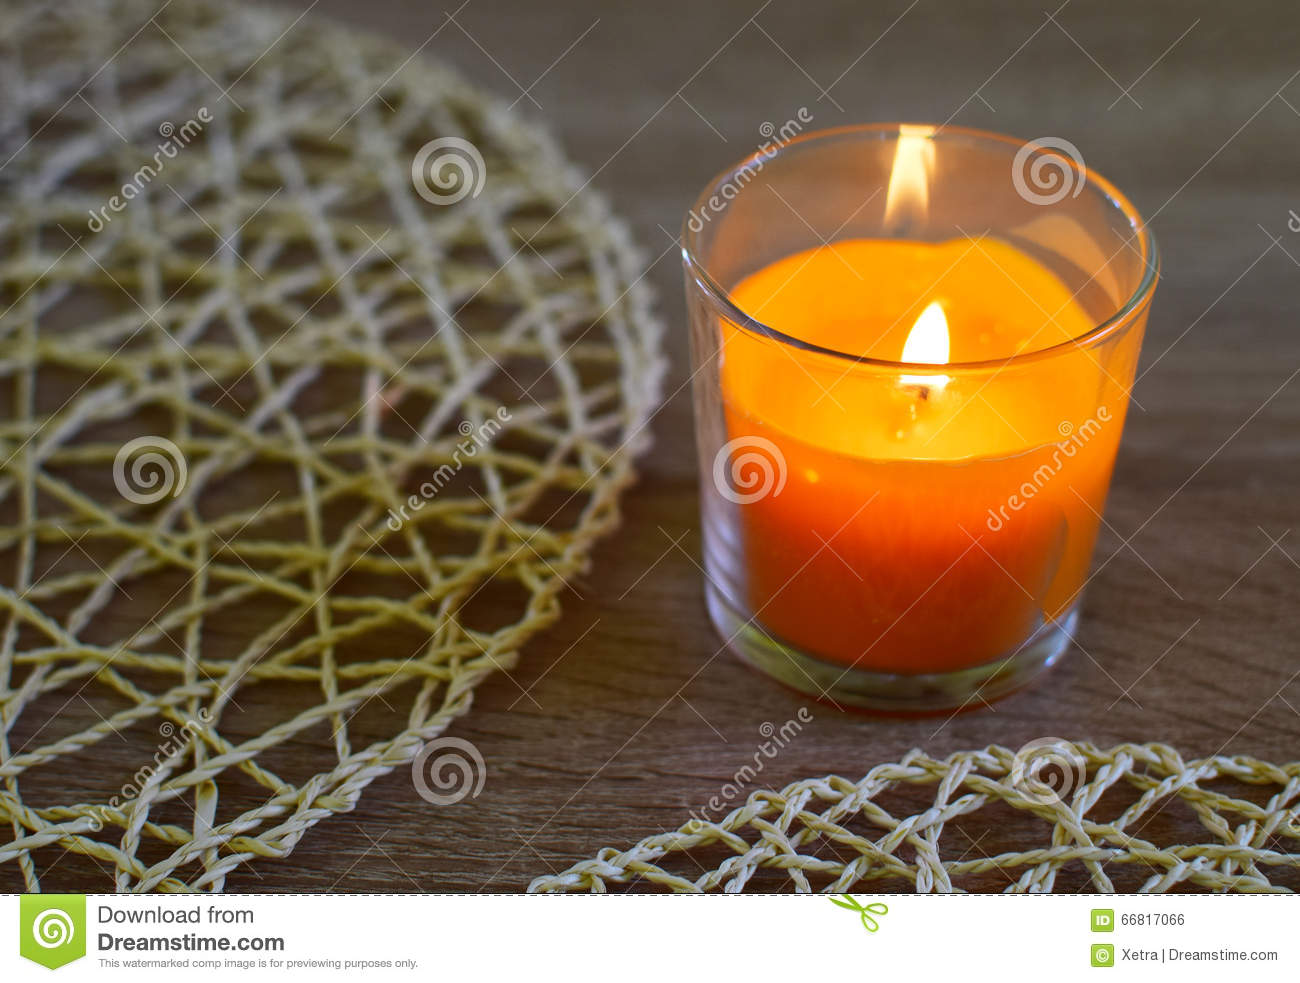 #CA3C01 Candle Decoration Stock Photo Image: 66817066 5283 decoration table noel orange 1300x983 px @ aertt.com